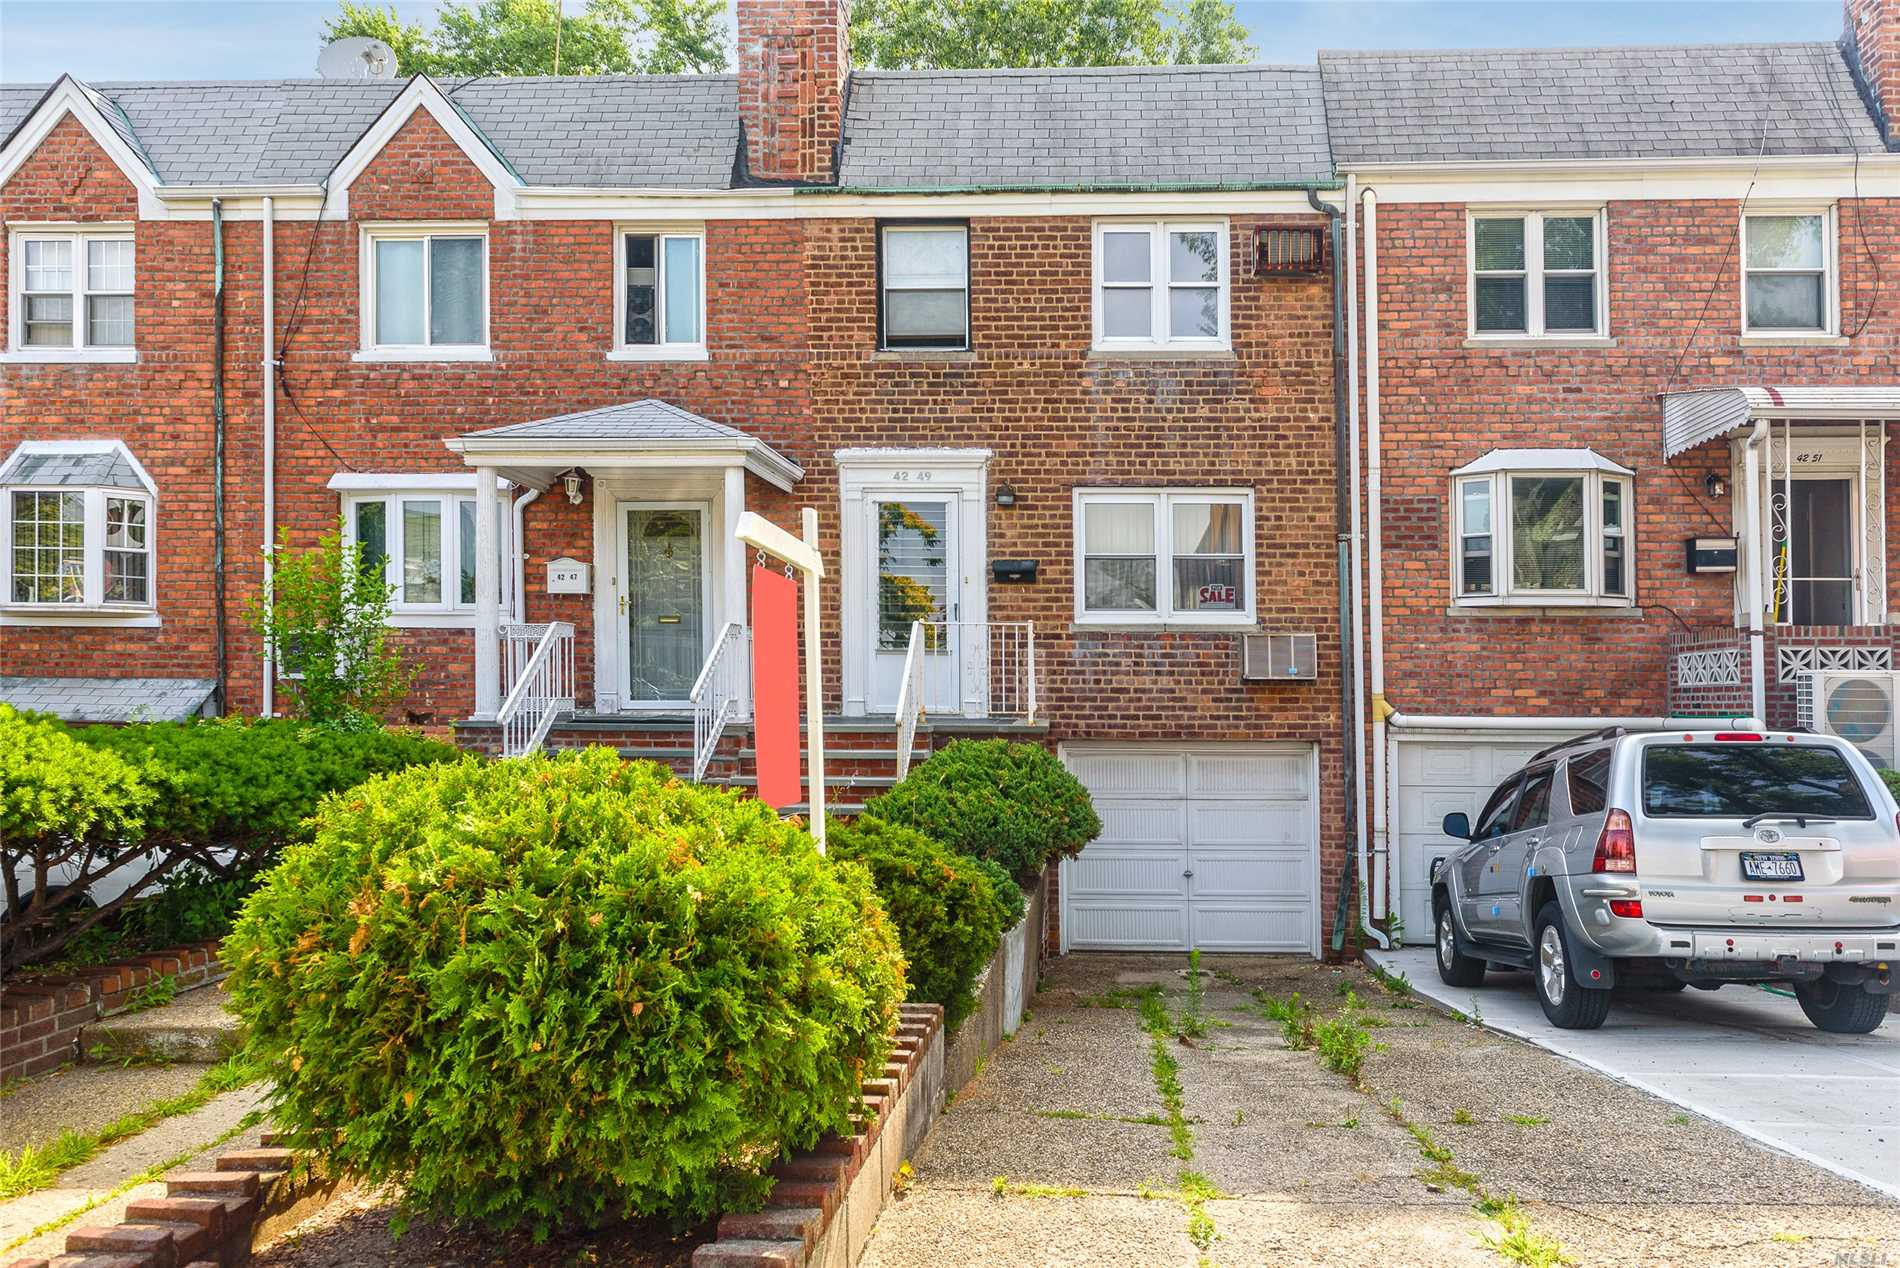 Location! Location! Location!  3Br/1.5Bth Gas Heated Colonial Conveniently Located 3 Houses Away From Northern Blvd (Buses, Restaurants, Bank) On A 18X120 Lot.  Updated The Home To Your Exact Specifications And Desires. Low Taxes And Loads Of Potential!!!